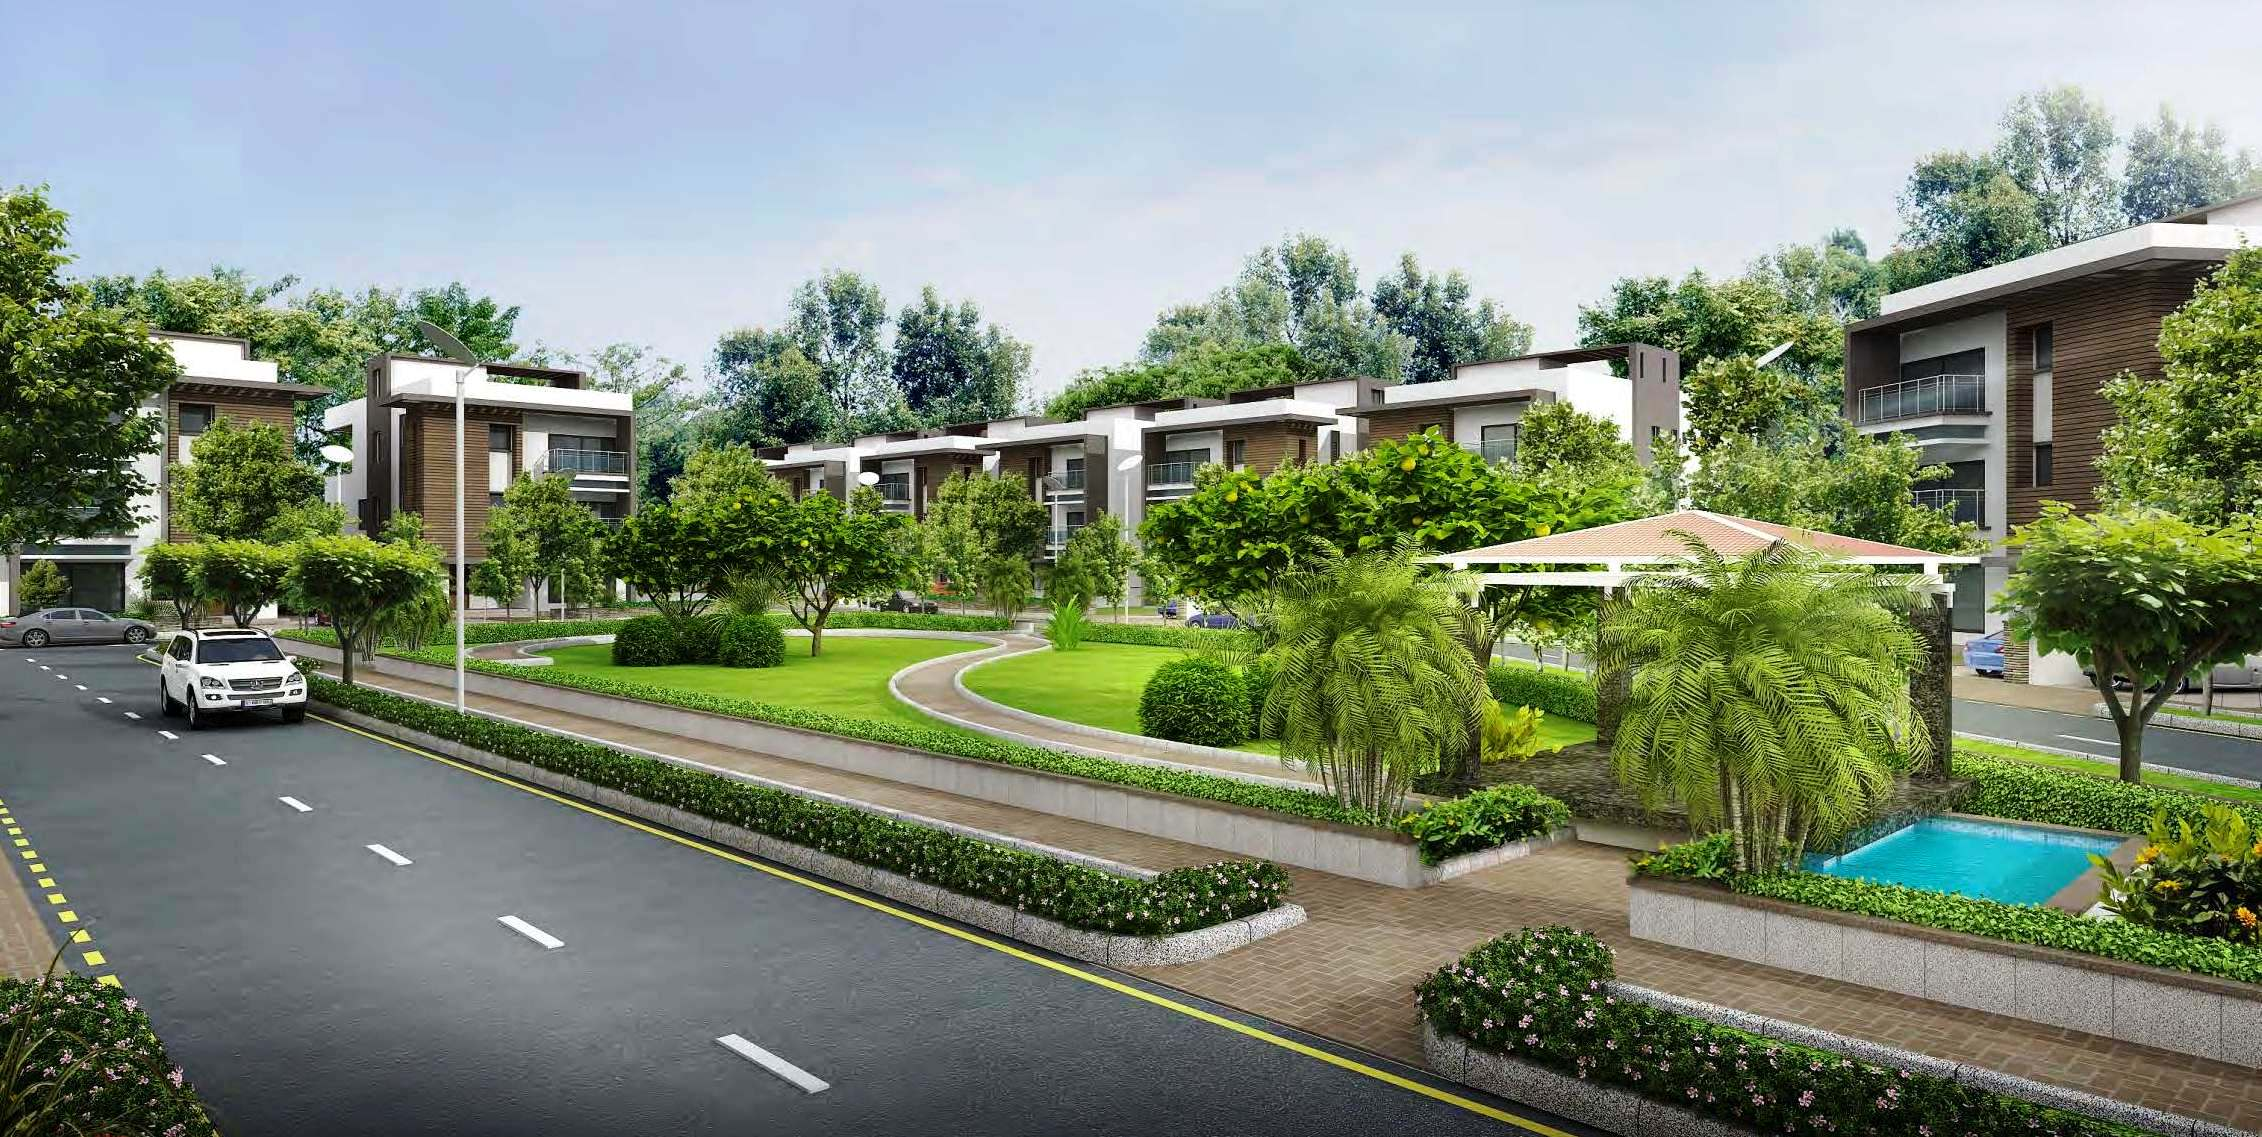 3 Bhk Villas in Sobha International City Phase 1